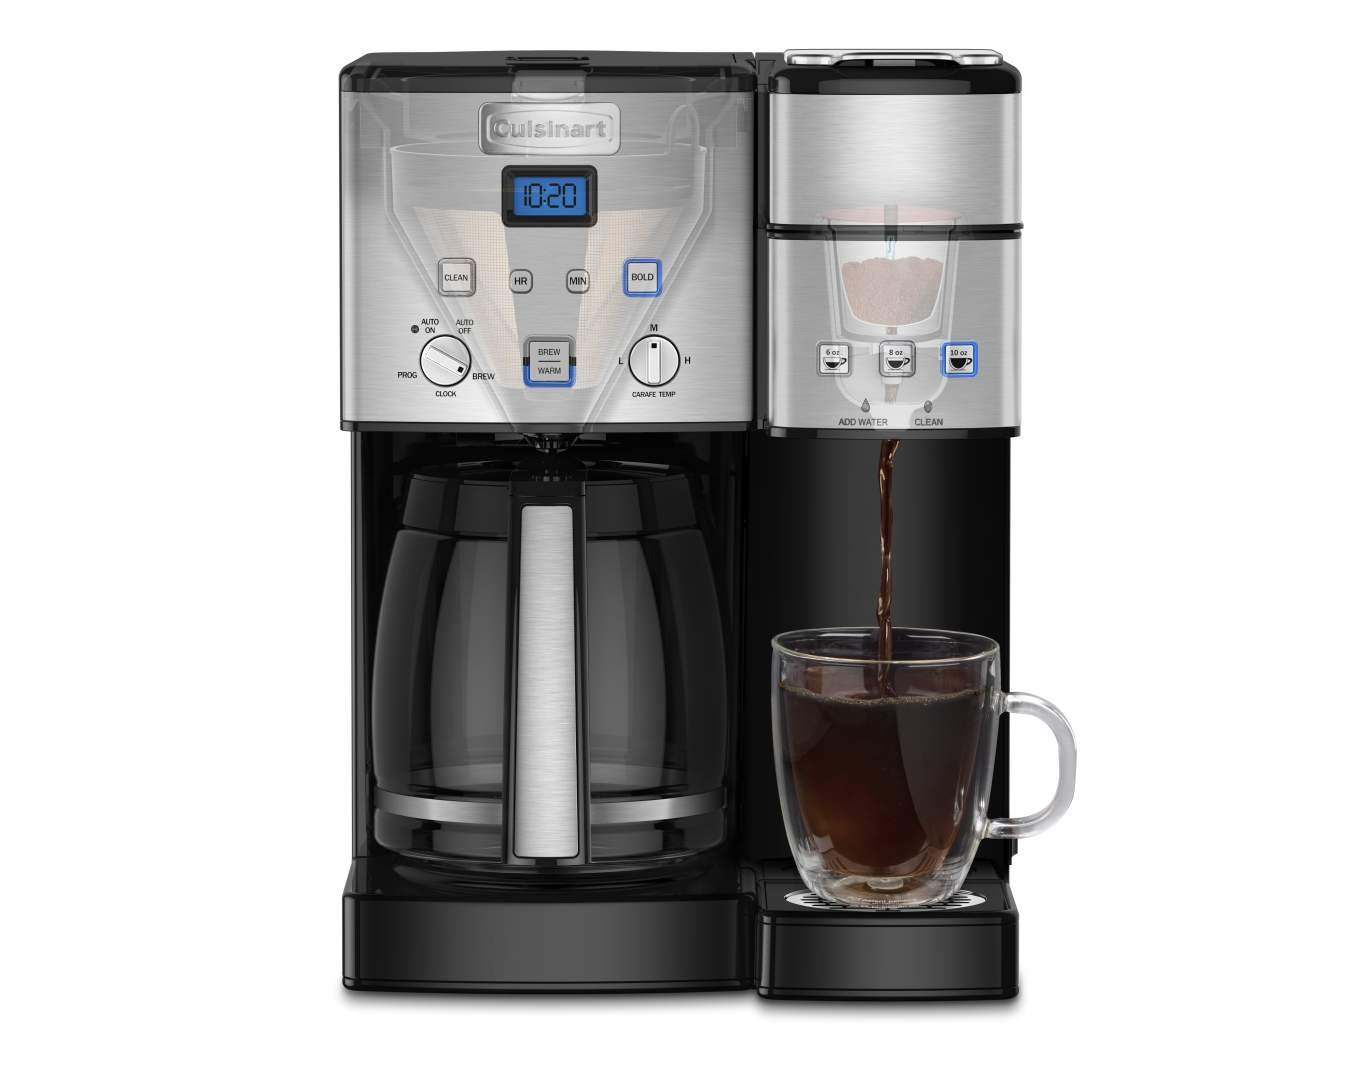 Cuisinart SS-15 12-Cup Coffee Maker and Single-Serve Brewer, Stainless Steel by Cuisinart (Image #2)